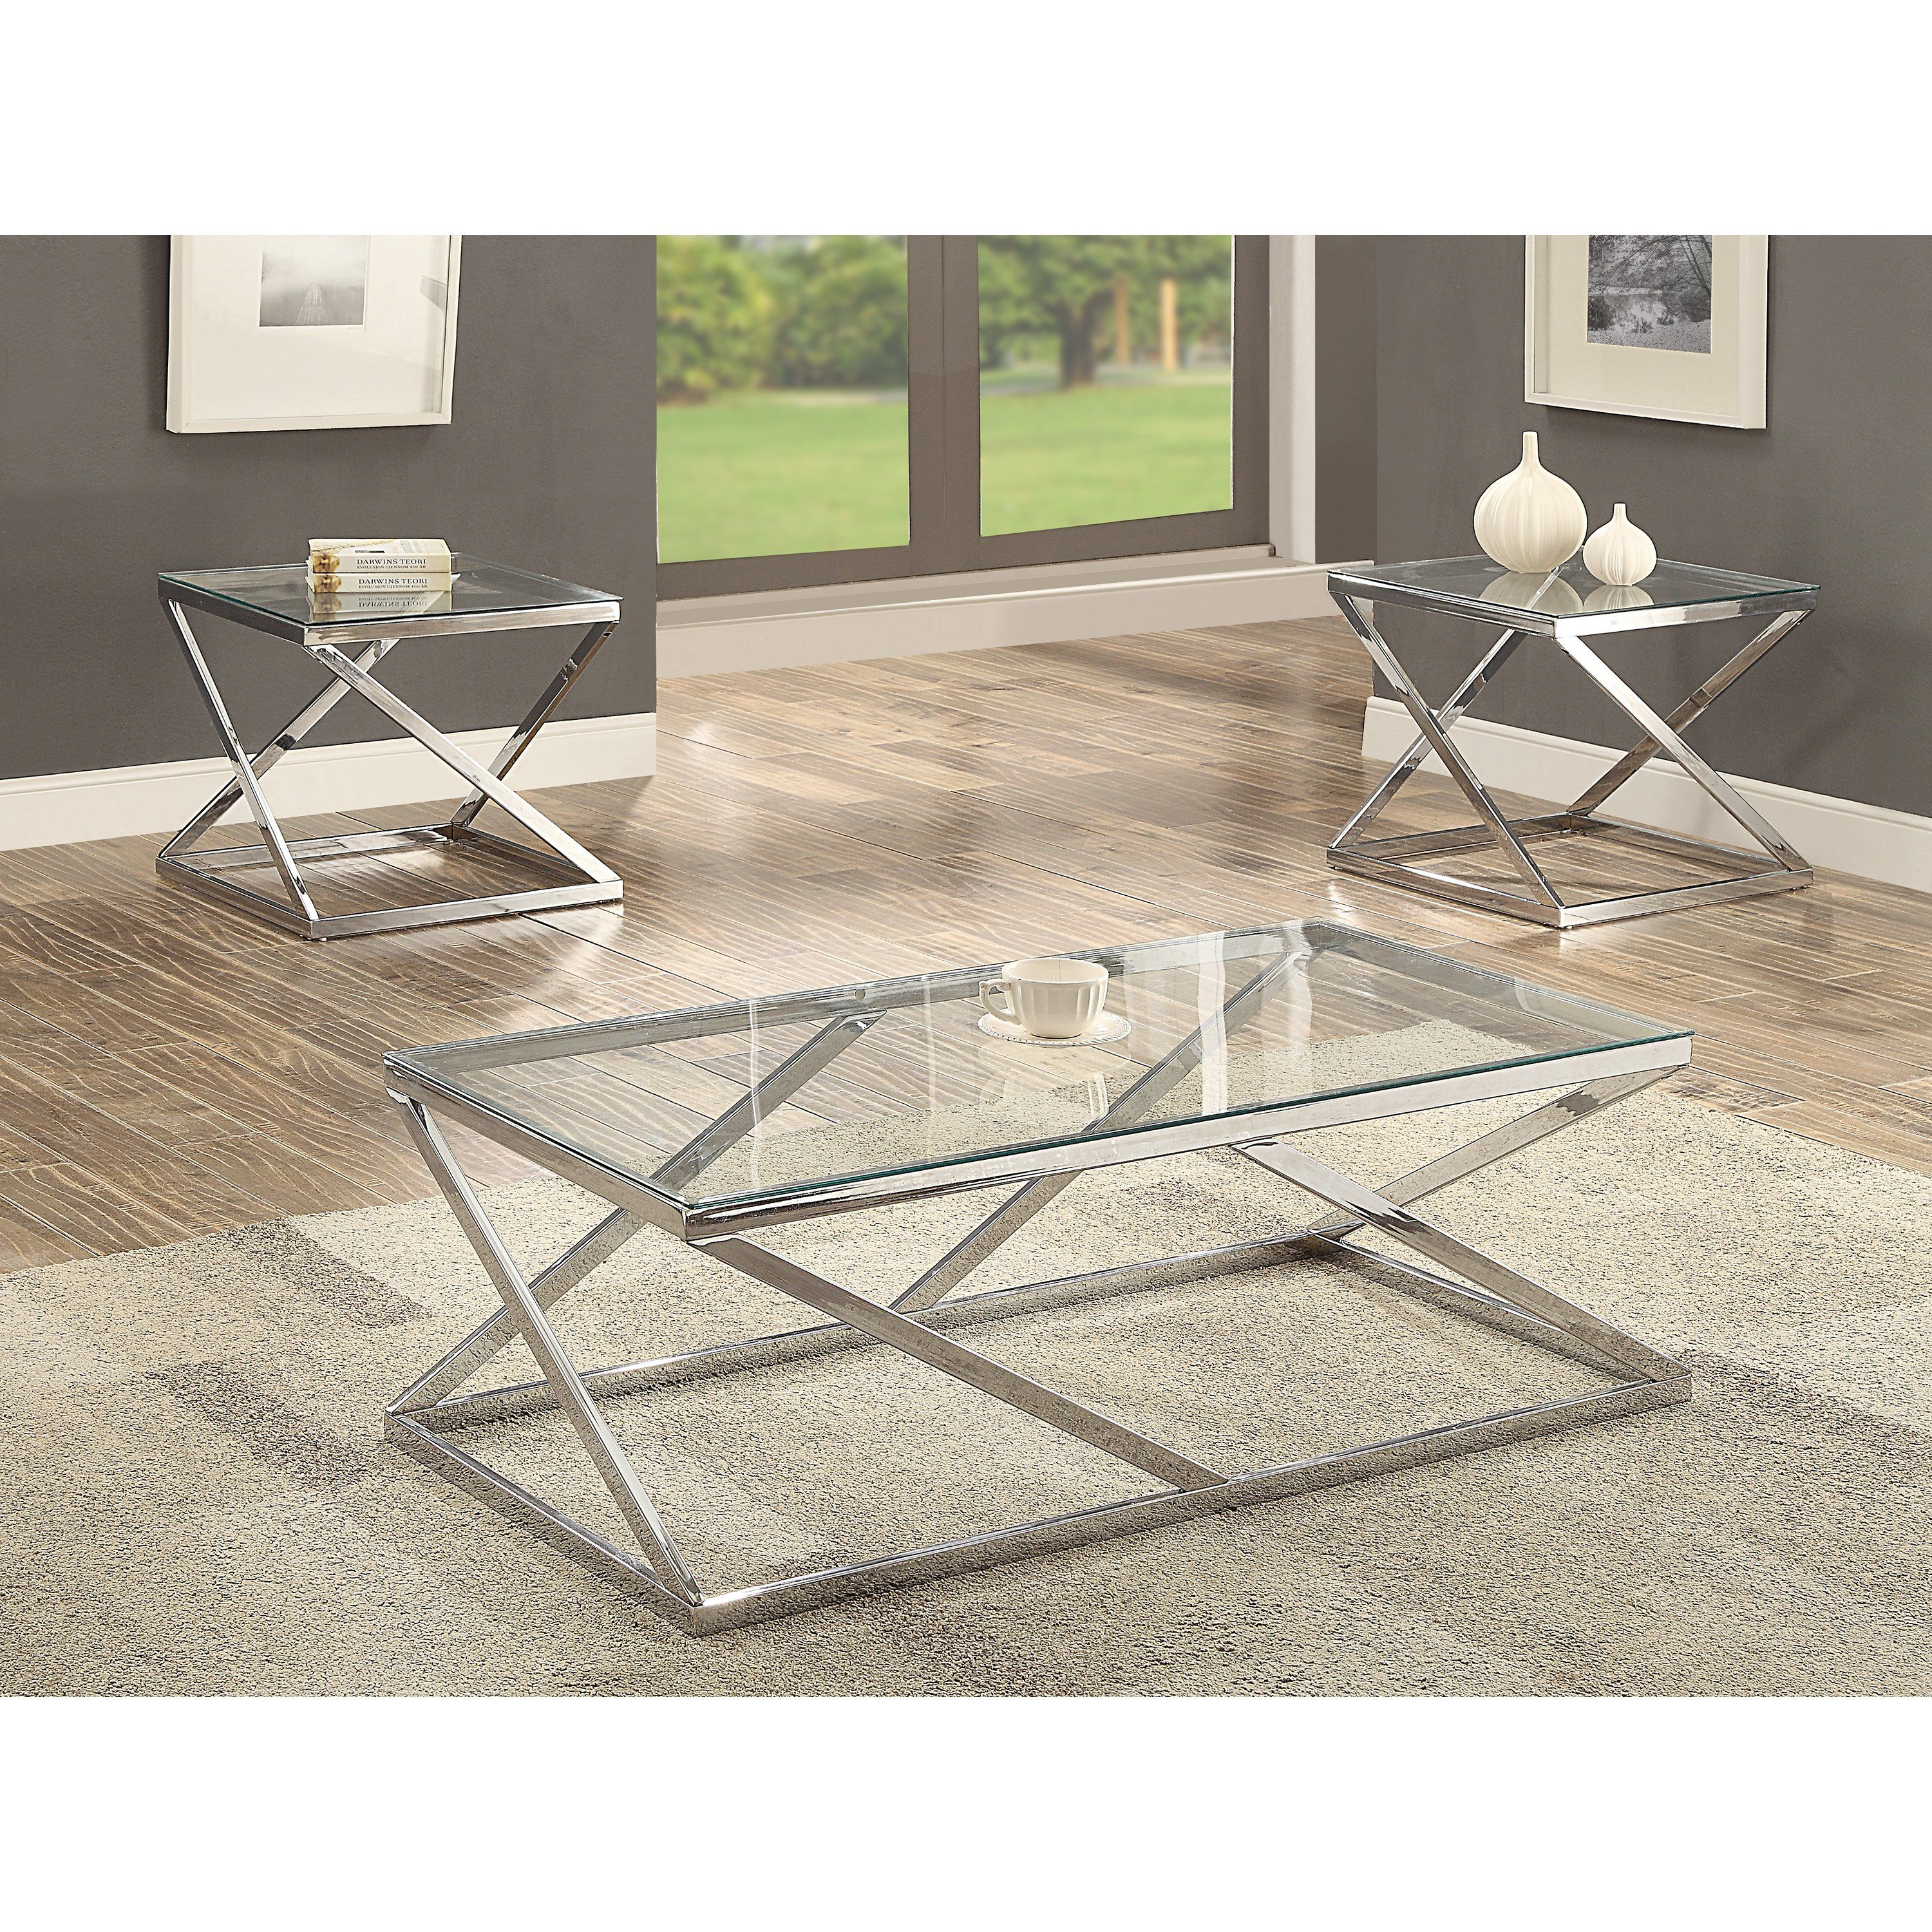 Chrome And Glass 3 Piece Coffee Table Set Rc Willey Furniture Store 3 Piece Coffee Table Set Coffee Table Setting Coffee Table [ 3000 x 3000 Pixel ]